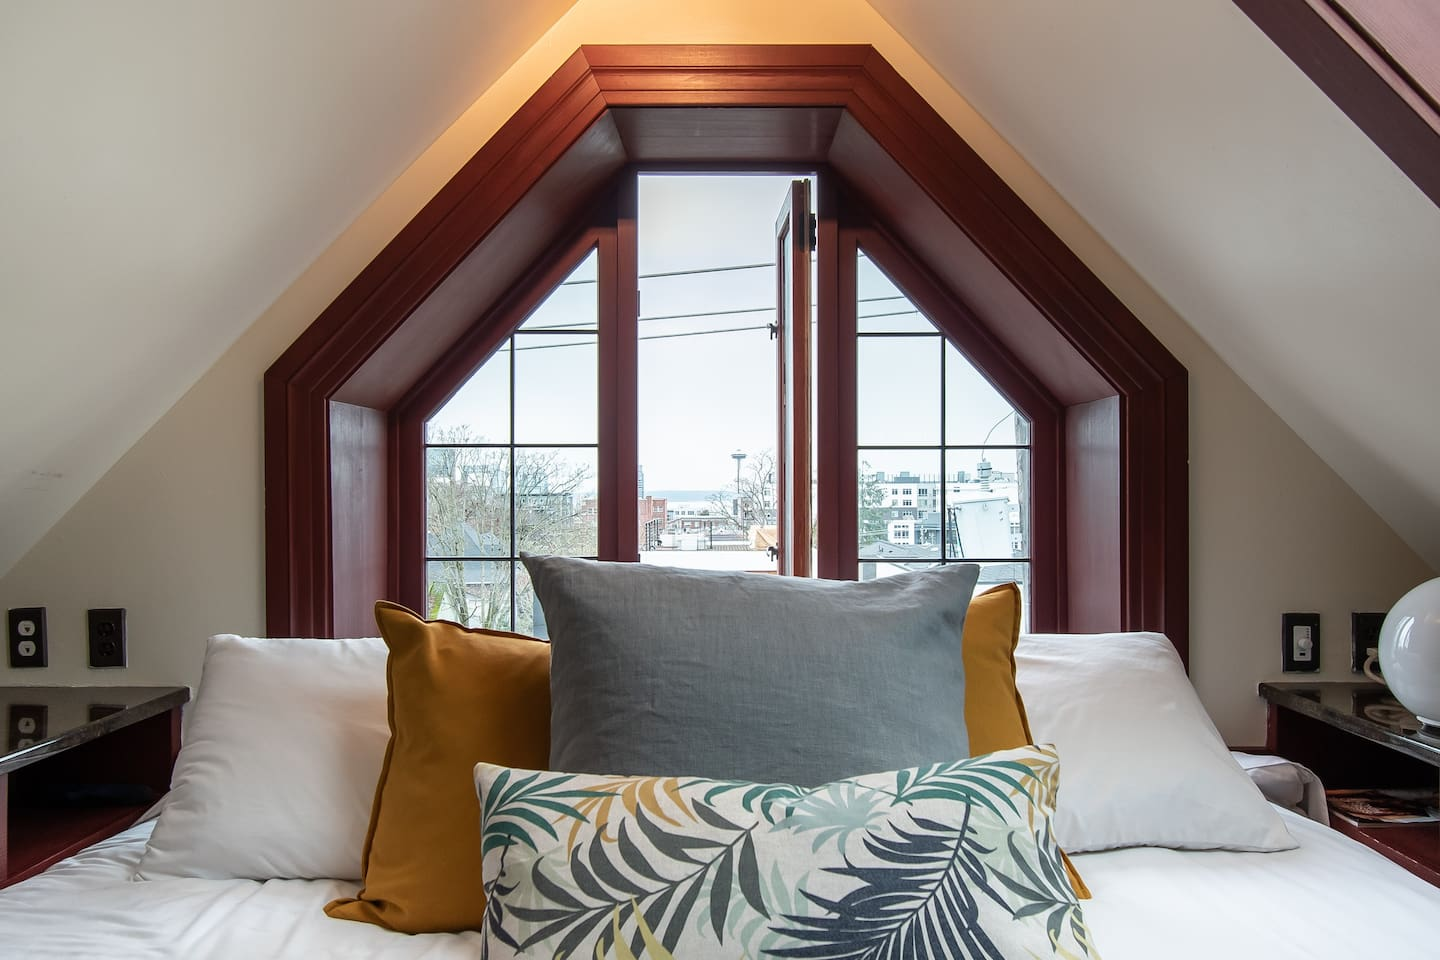 Enjoy the Space Needle views as you snuggle up in our huge comfy king sized bed, with plenty of fluffy pillows and outlets to charge all of your things :)